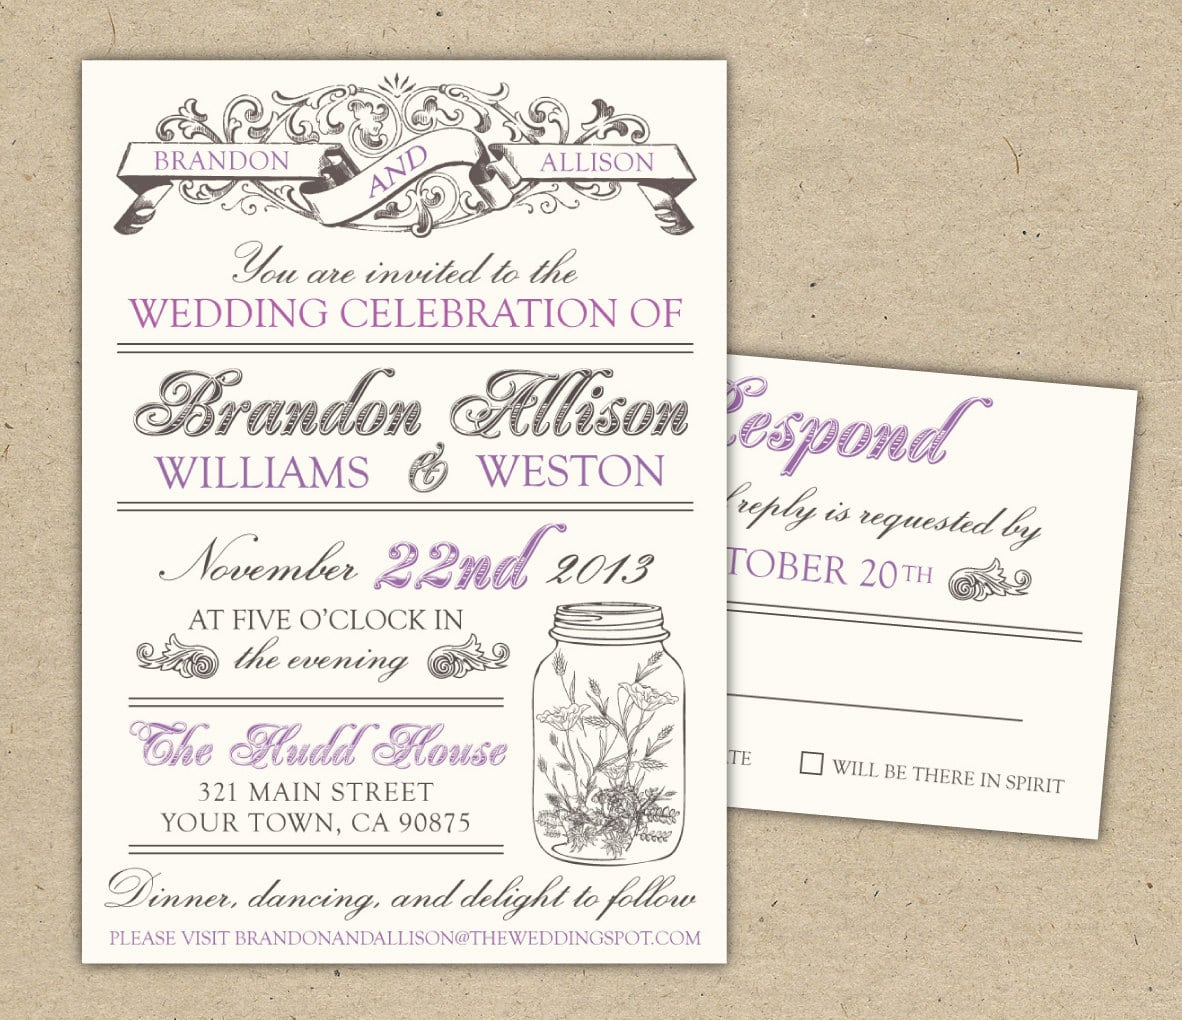 Free Wedding Invitations Templates correctly perfect ideas for your invitation layout